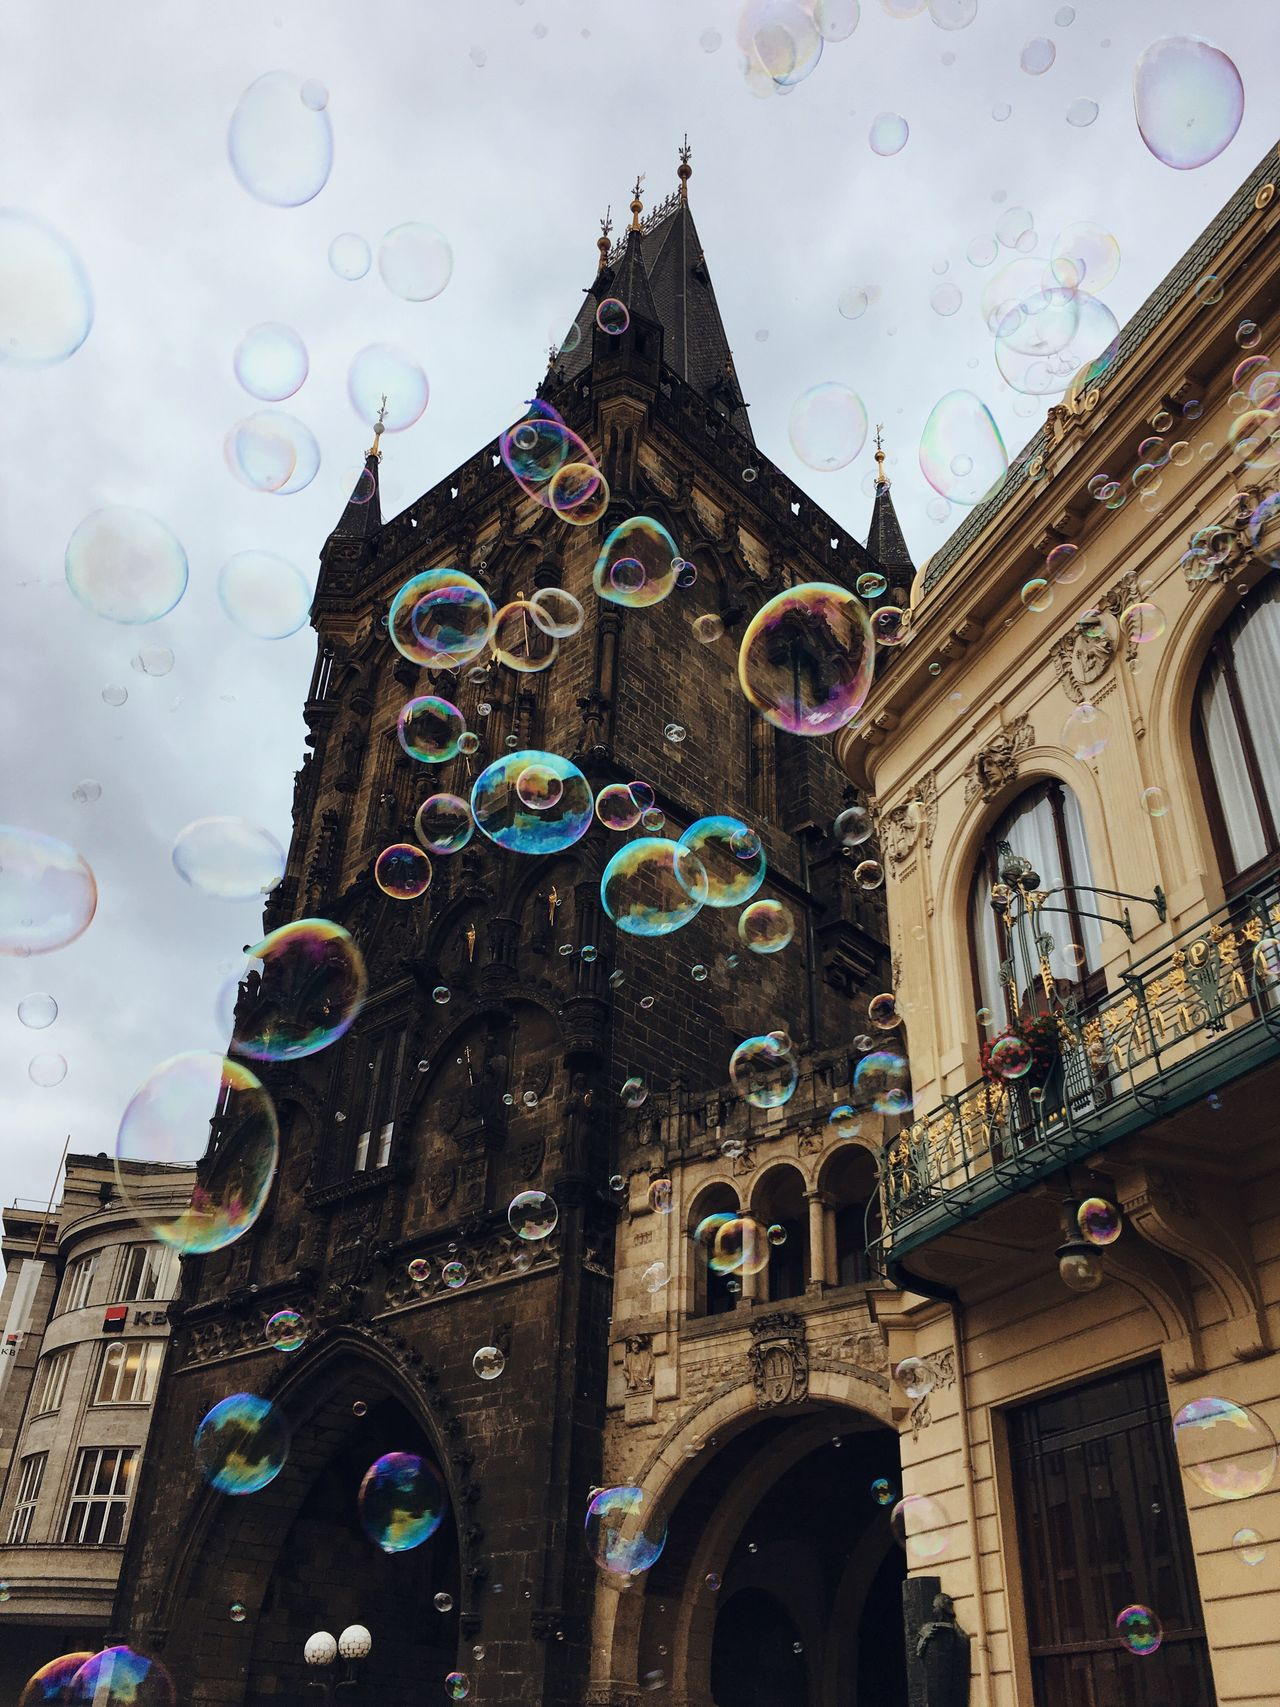 No matter how old I get, bubble will always be as amazing as the first time I saw them Architecture Built Structure Low Angle View Building Exterior Religion Place Of Worship Sky Spirituality No People Day Rose Window Outdoors Bubbles Colour Colour Of Life